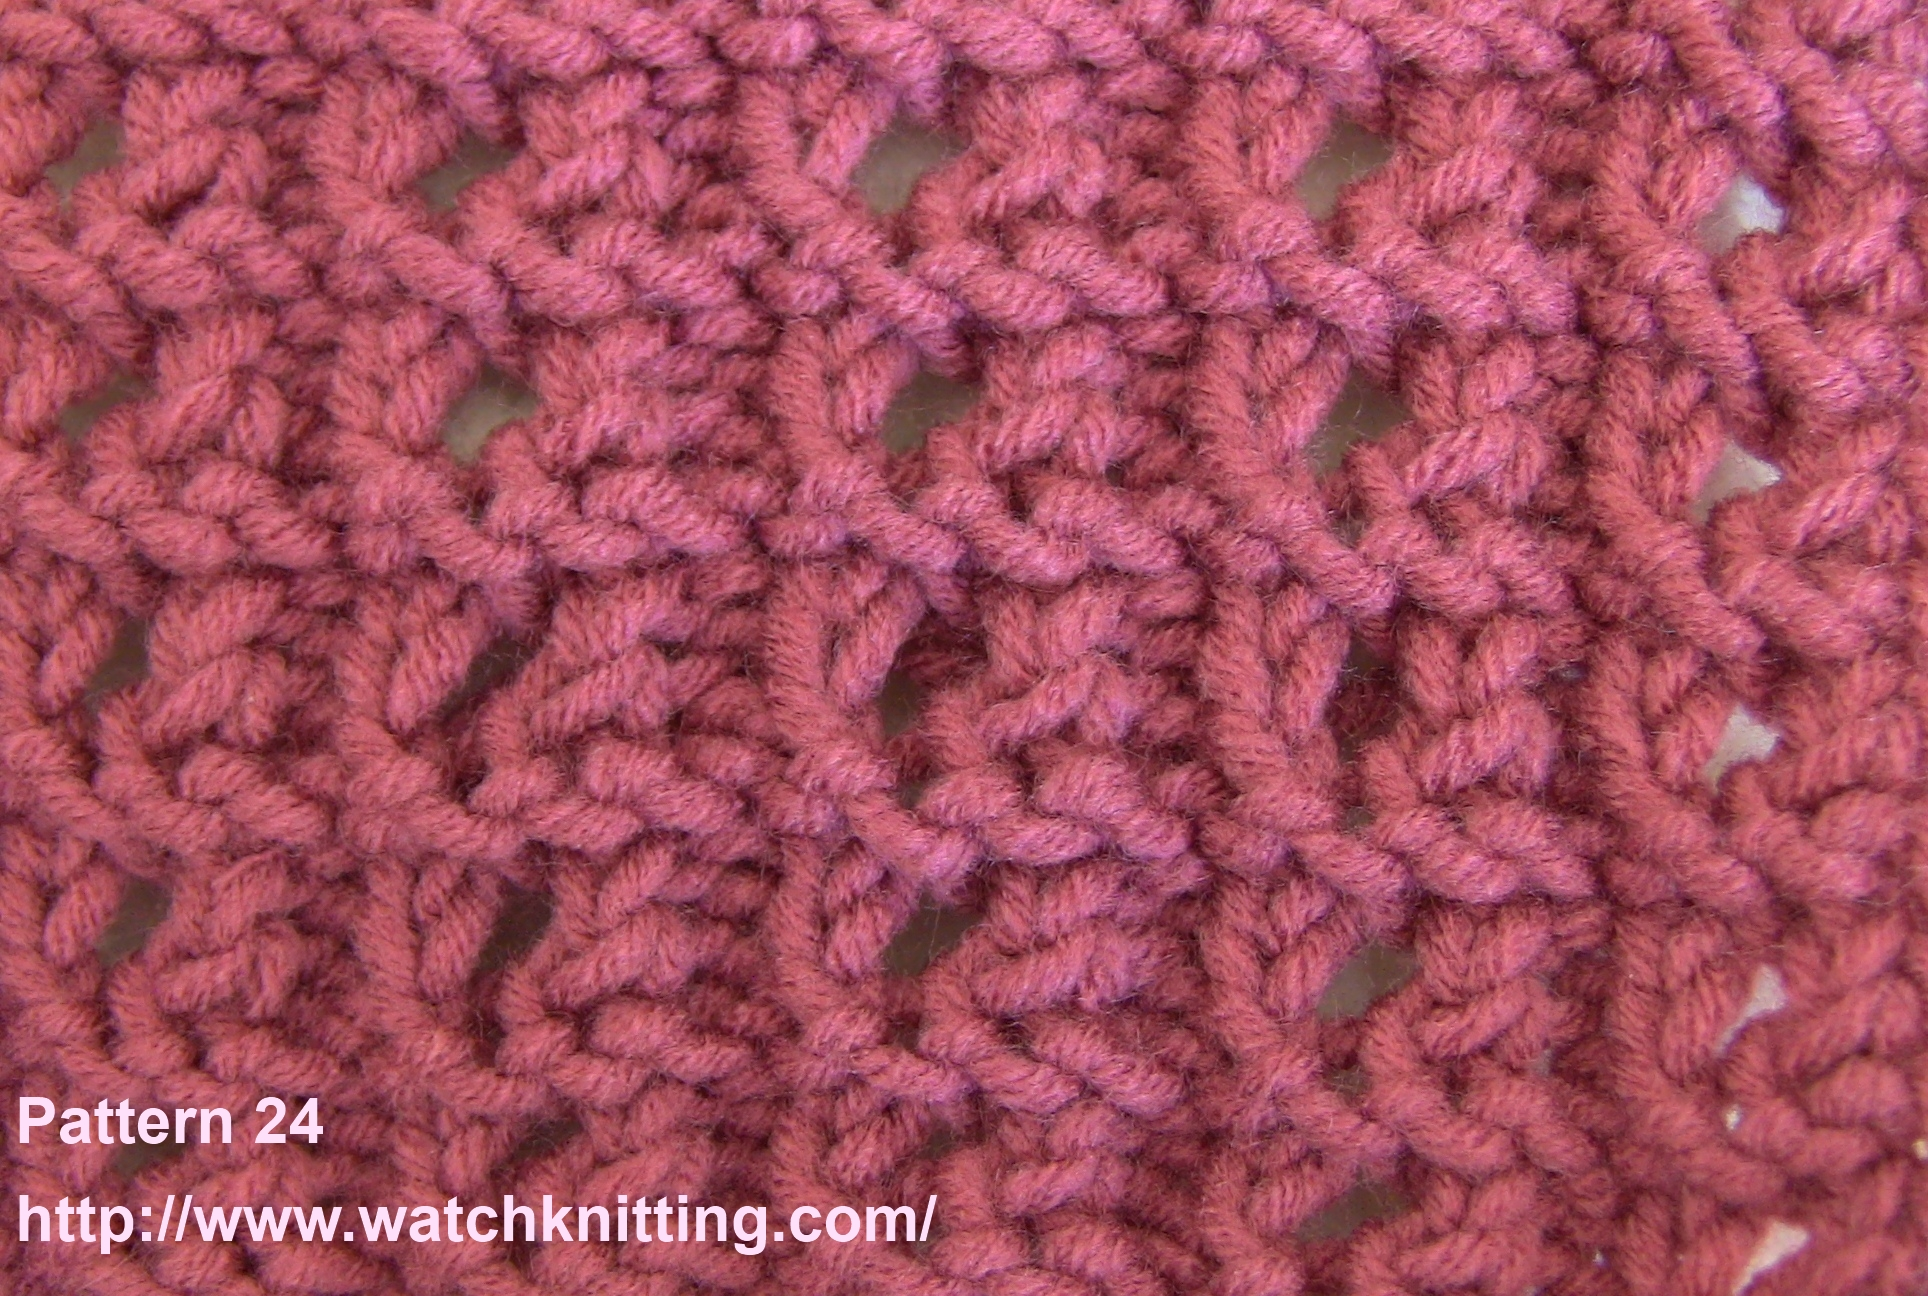 Knitting Patterns : Watchknitting pattern